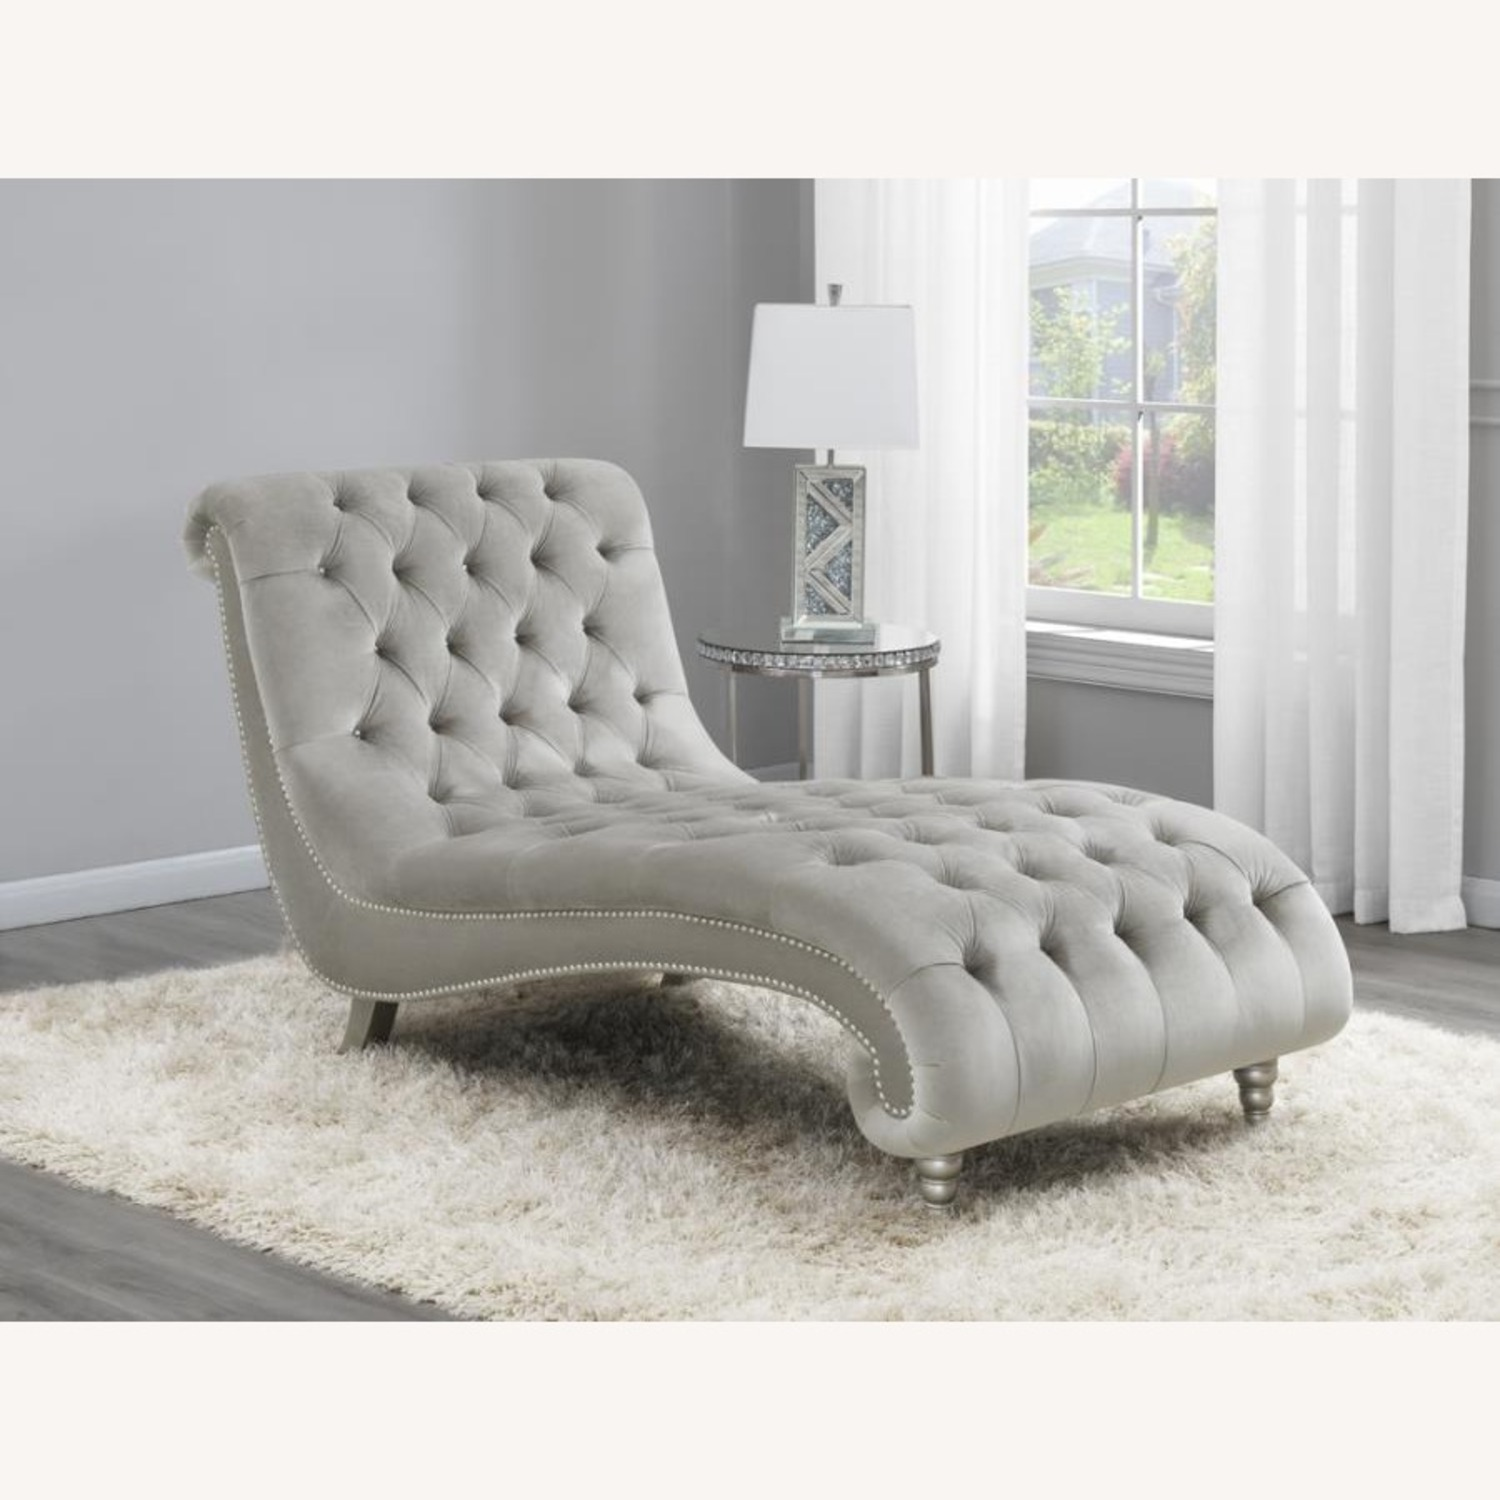 Chaise In Grey Velvet Chaise W/ Button Tufting - image-2